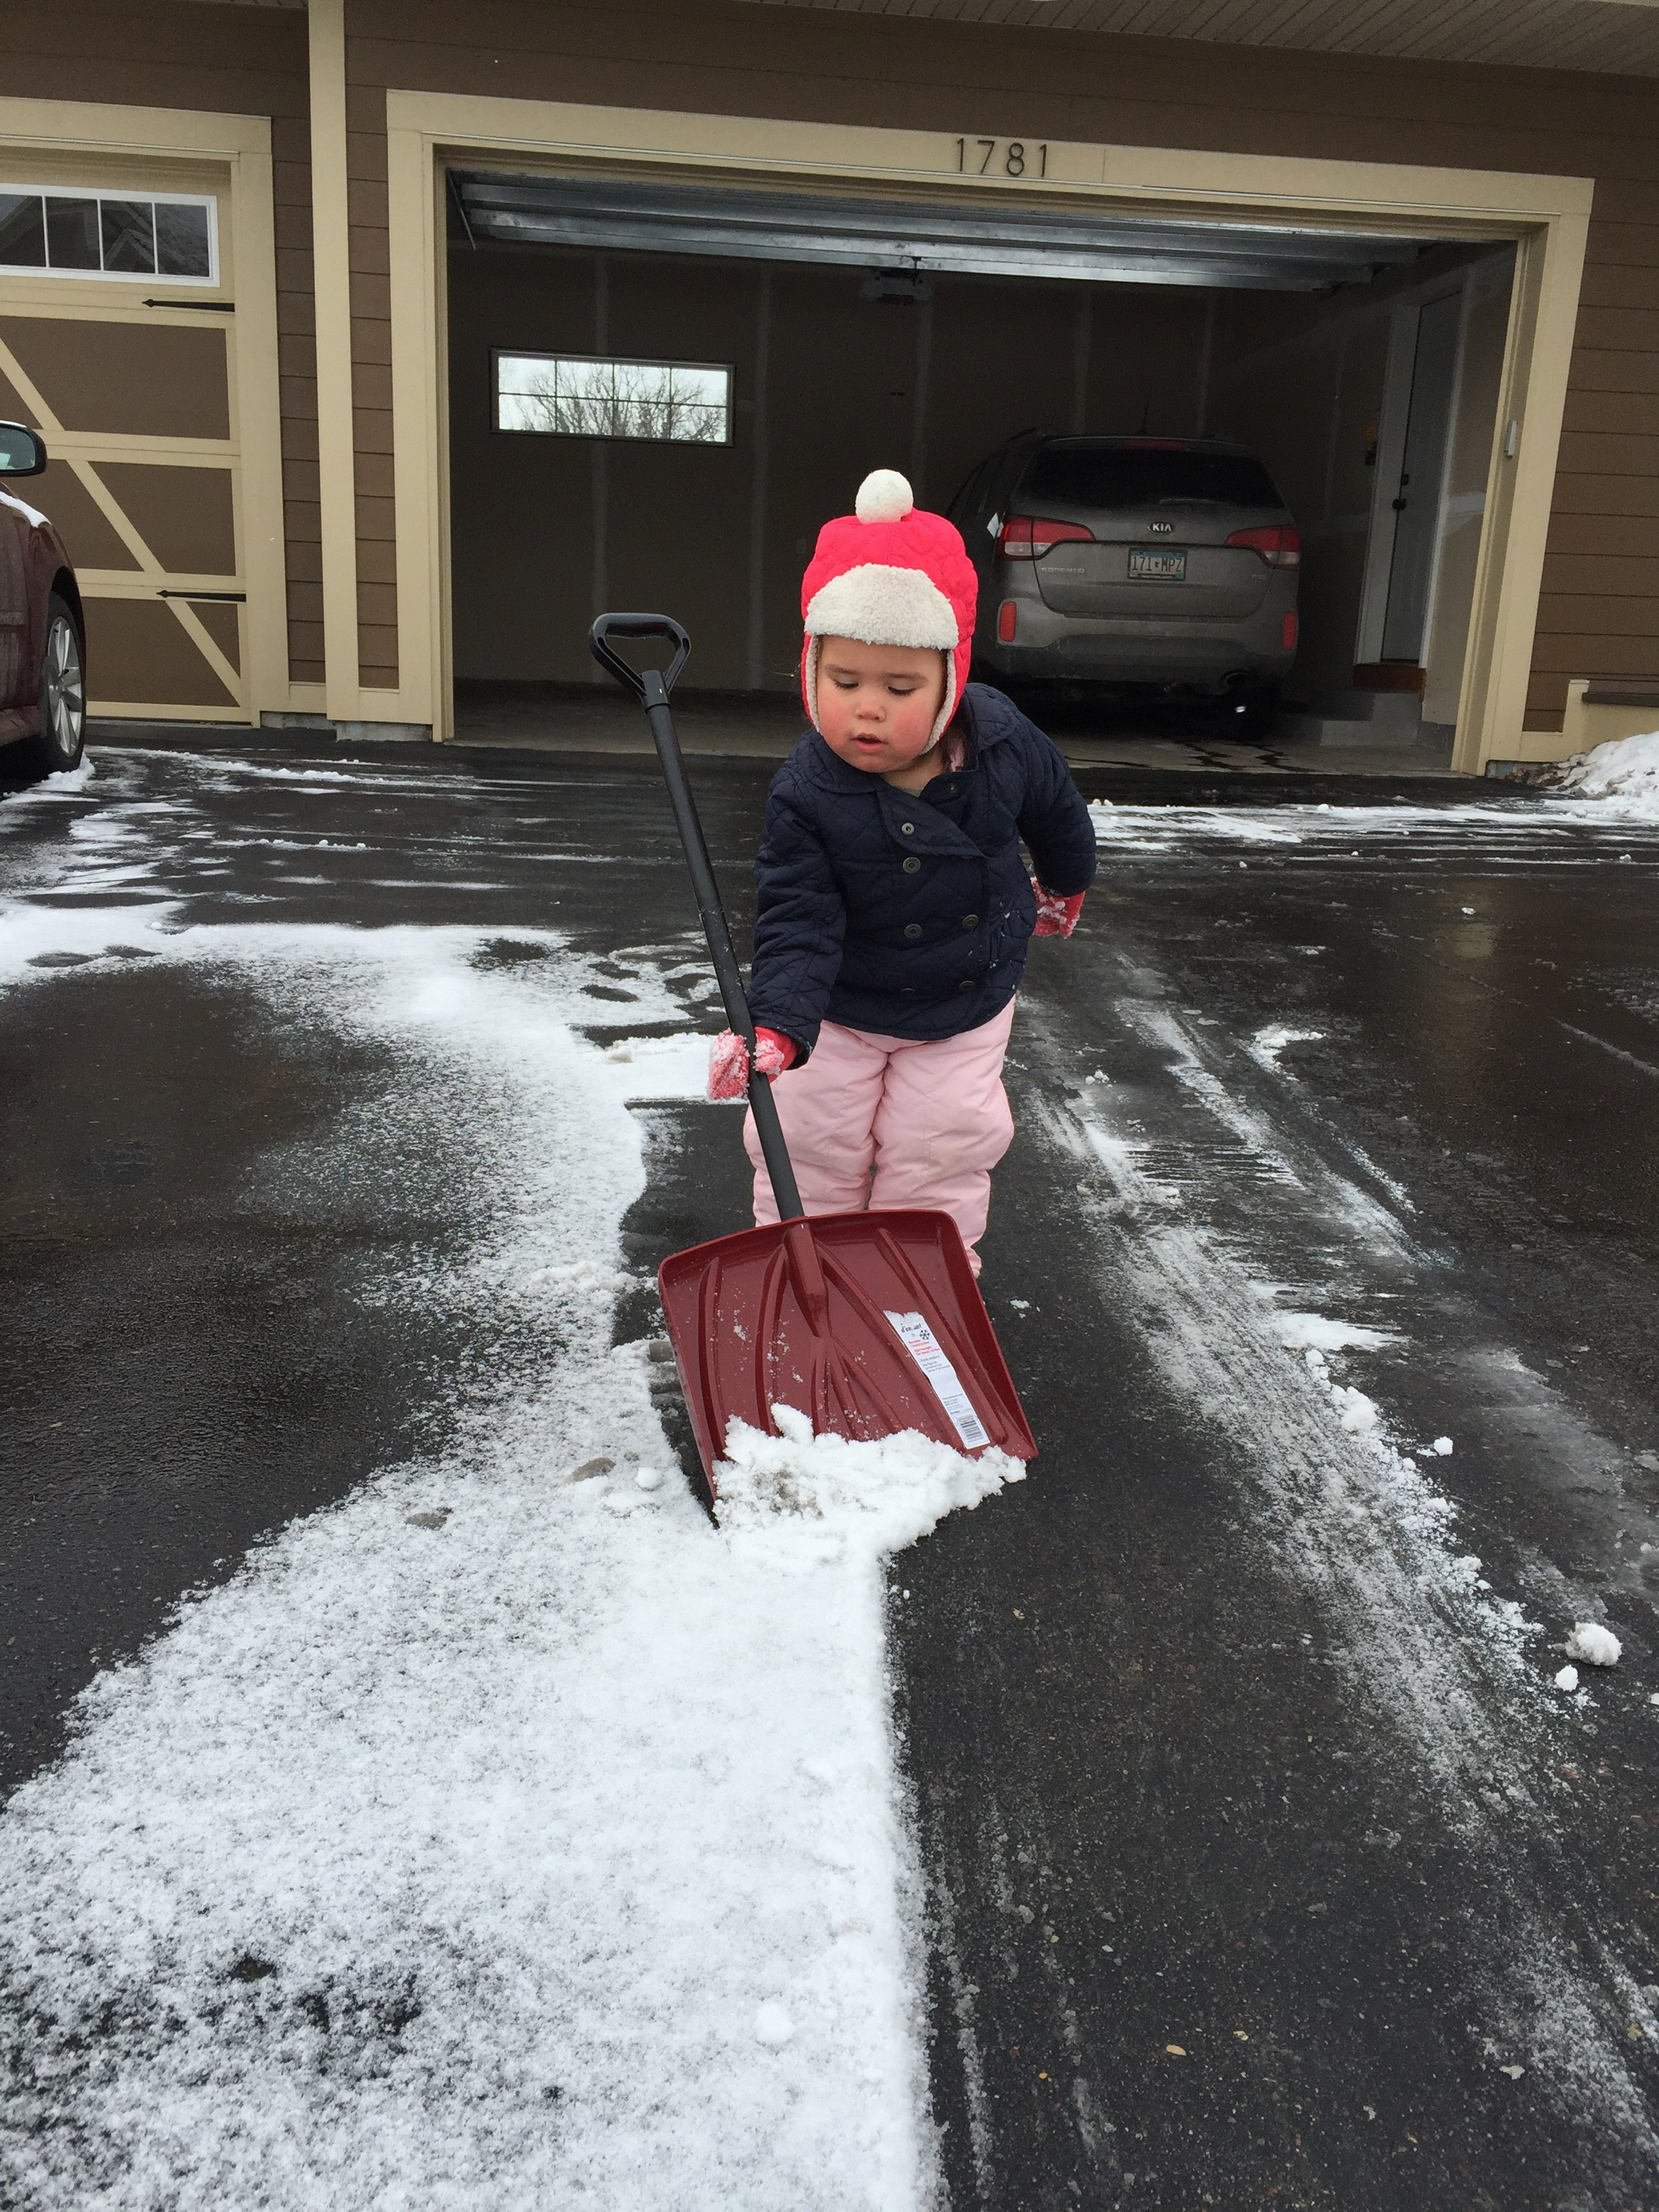 My helper...kinda. After we're done shoveling, she throws snow back onto the driveway and tells me I forgot some!